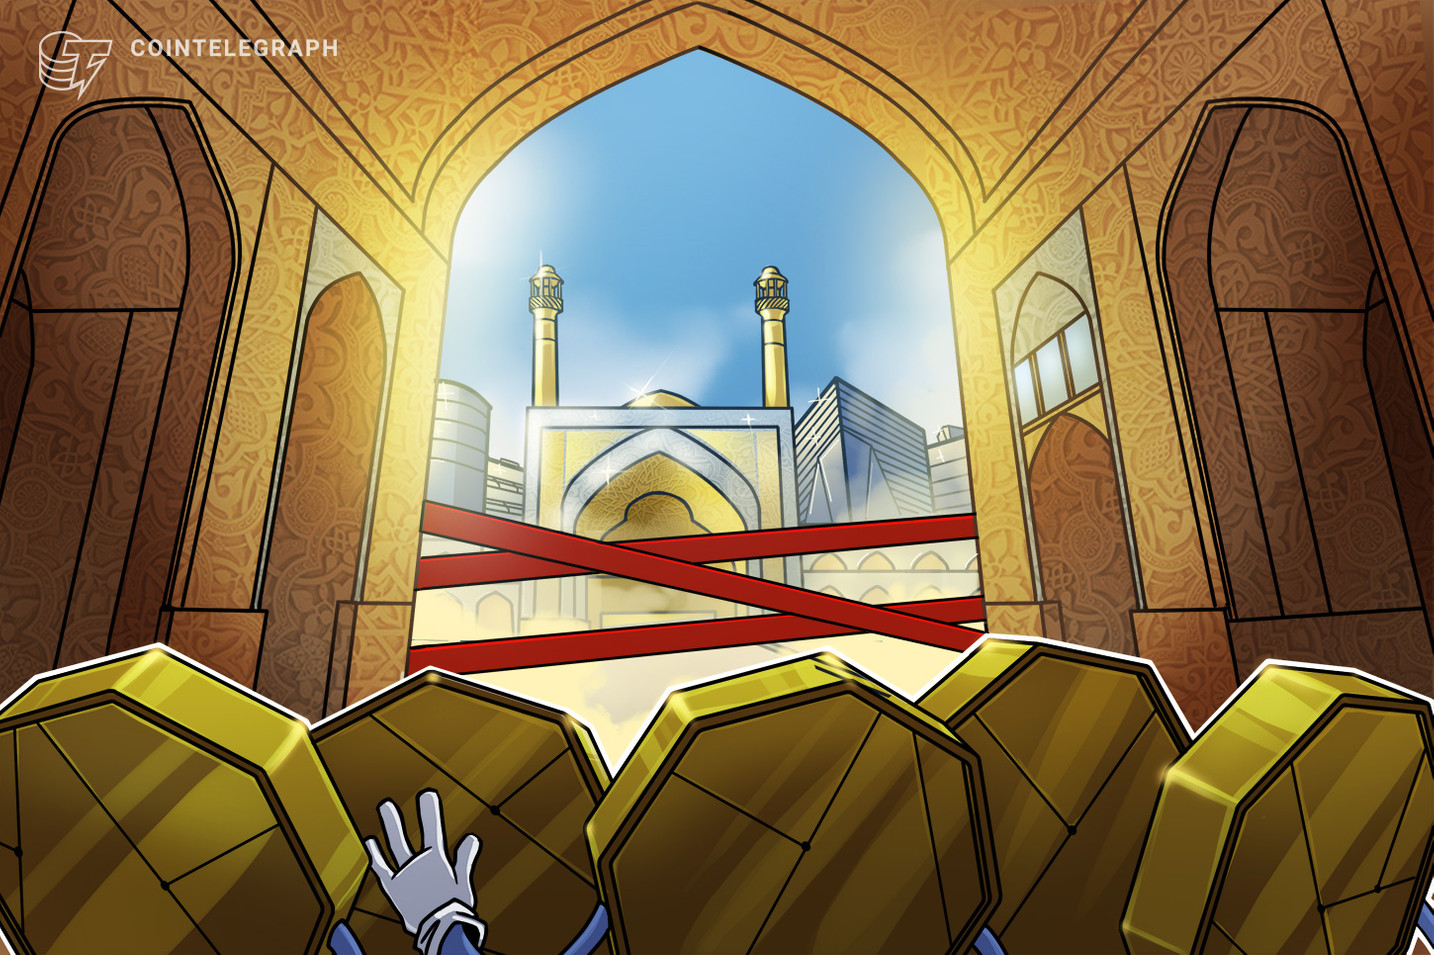 Iranian Authorities Confiscate 1,000 Bitcoin Mining Machines